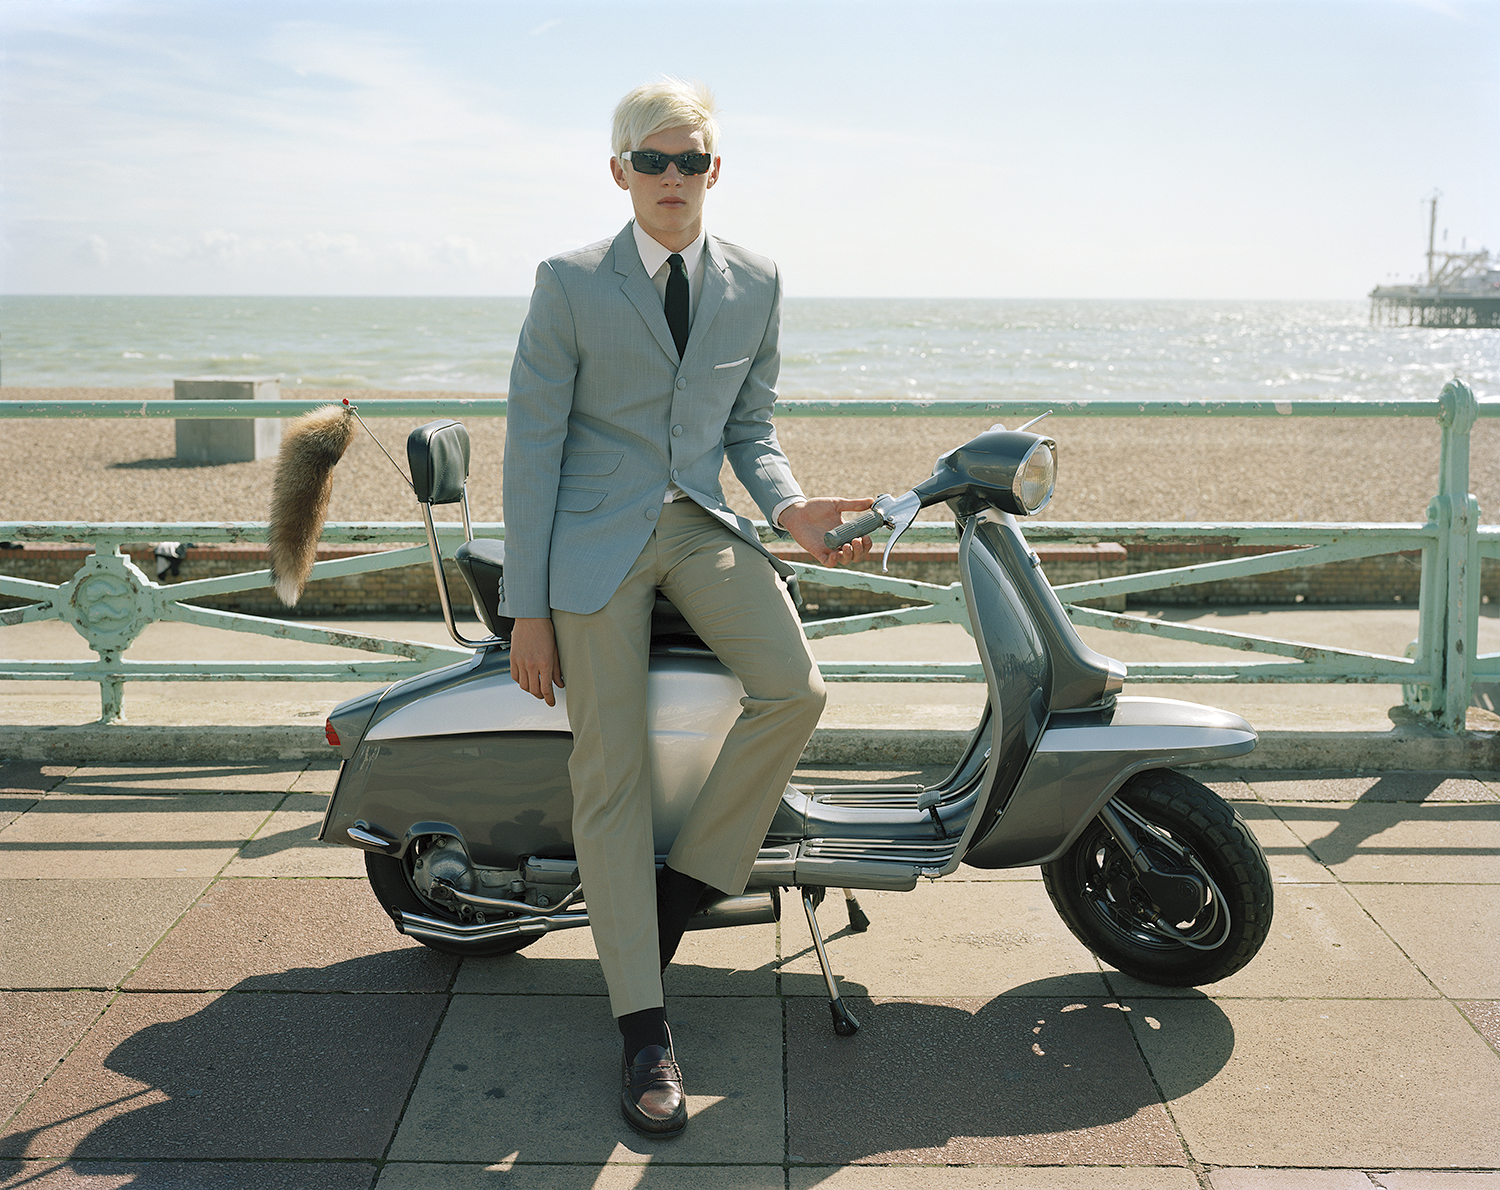 In homage to the Mods and to the film, 'Quadrophenia'.